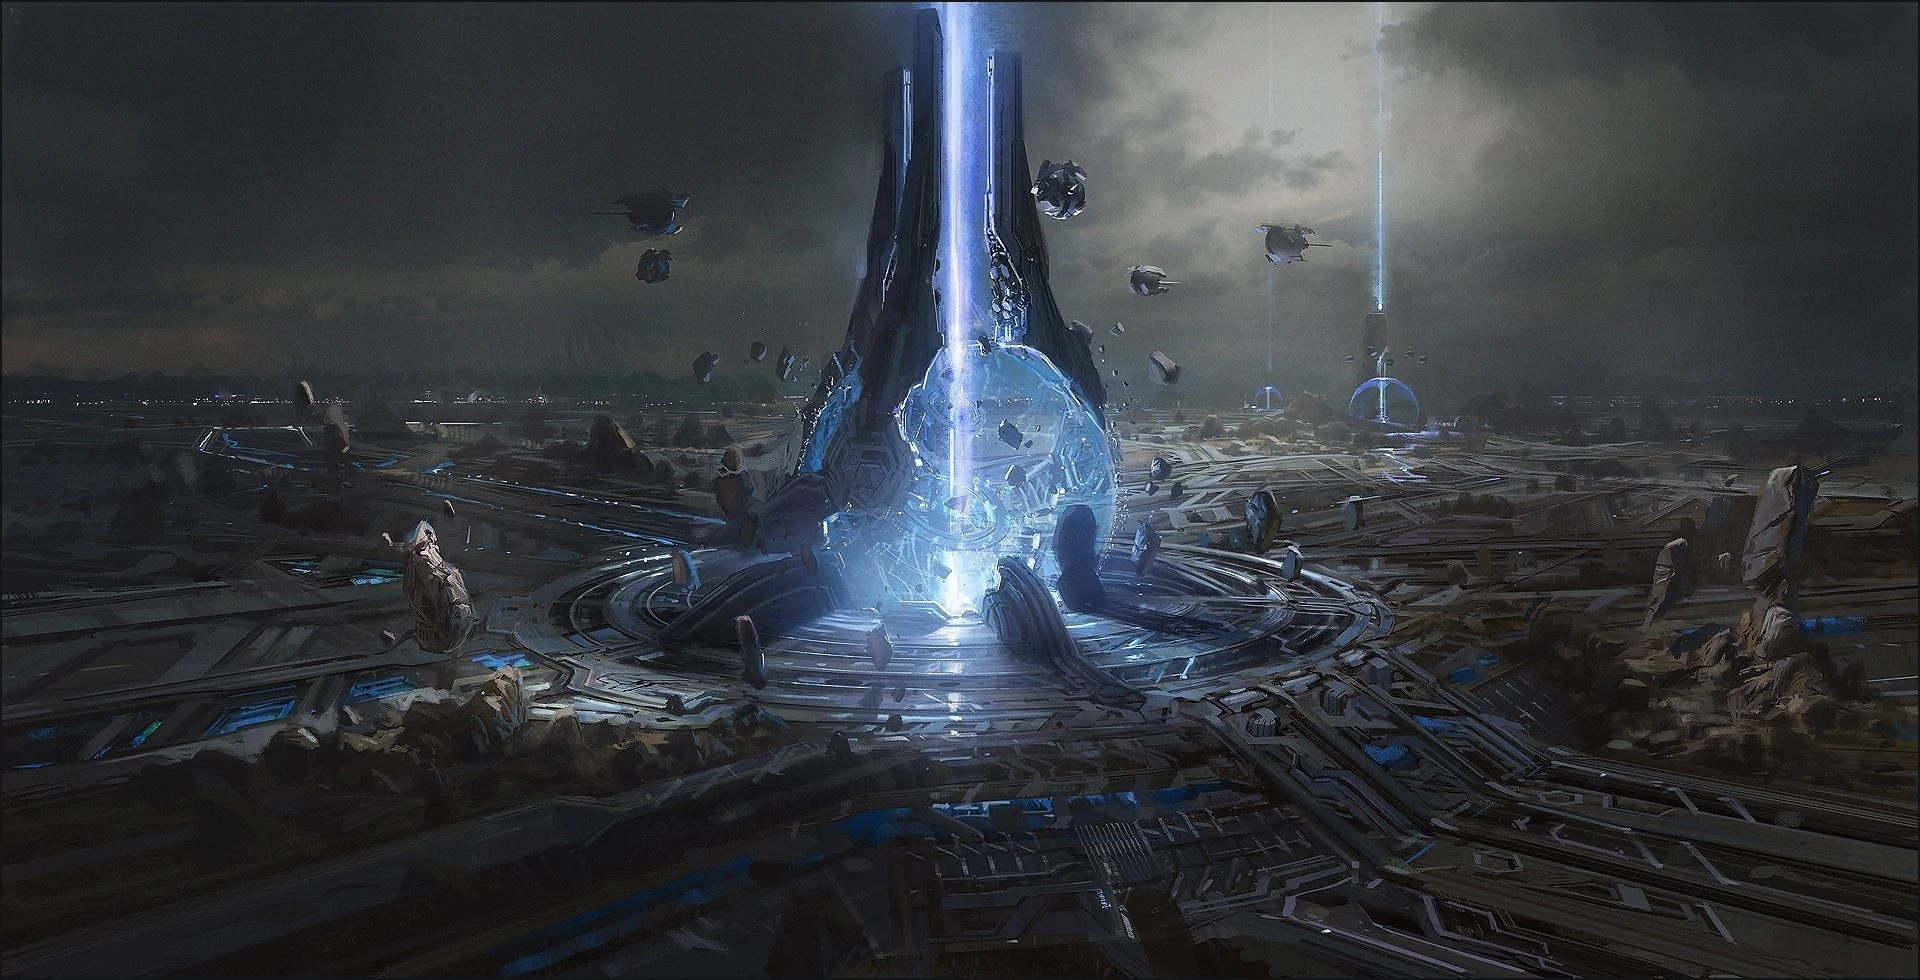 https://i1.wp.com/images.wikia.com/halo/images/f/fd/Halo-4-gravity-well.jpg